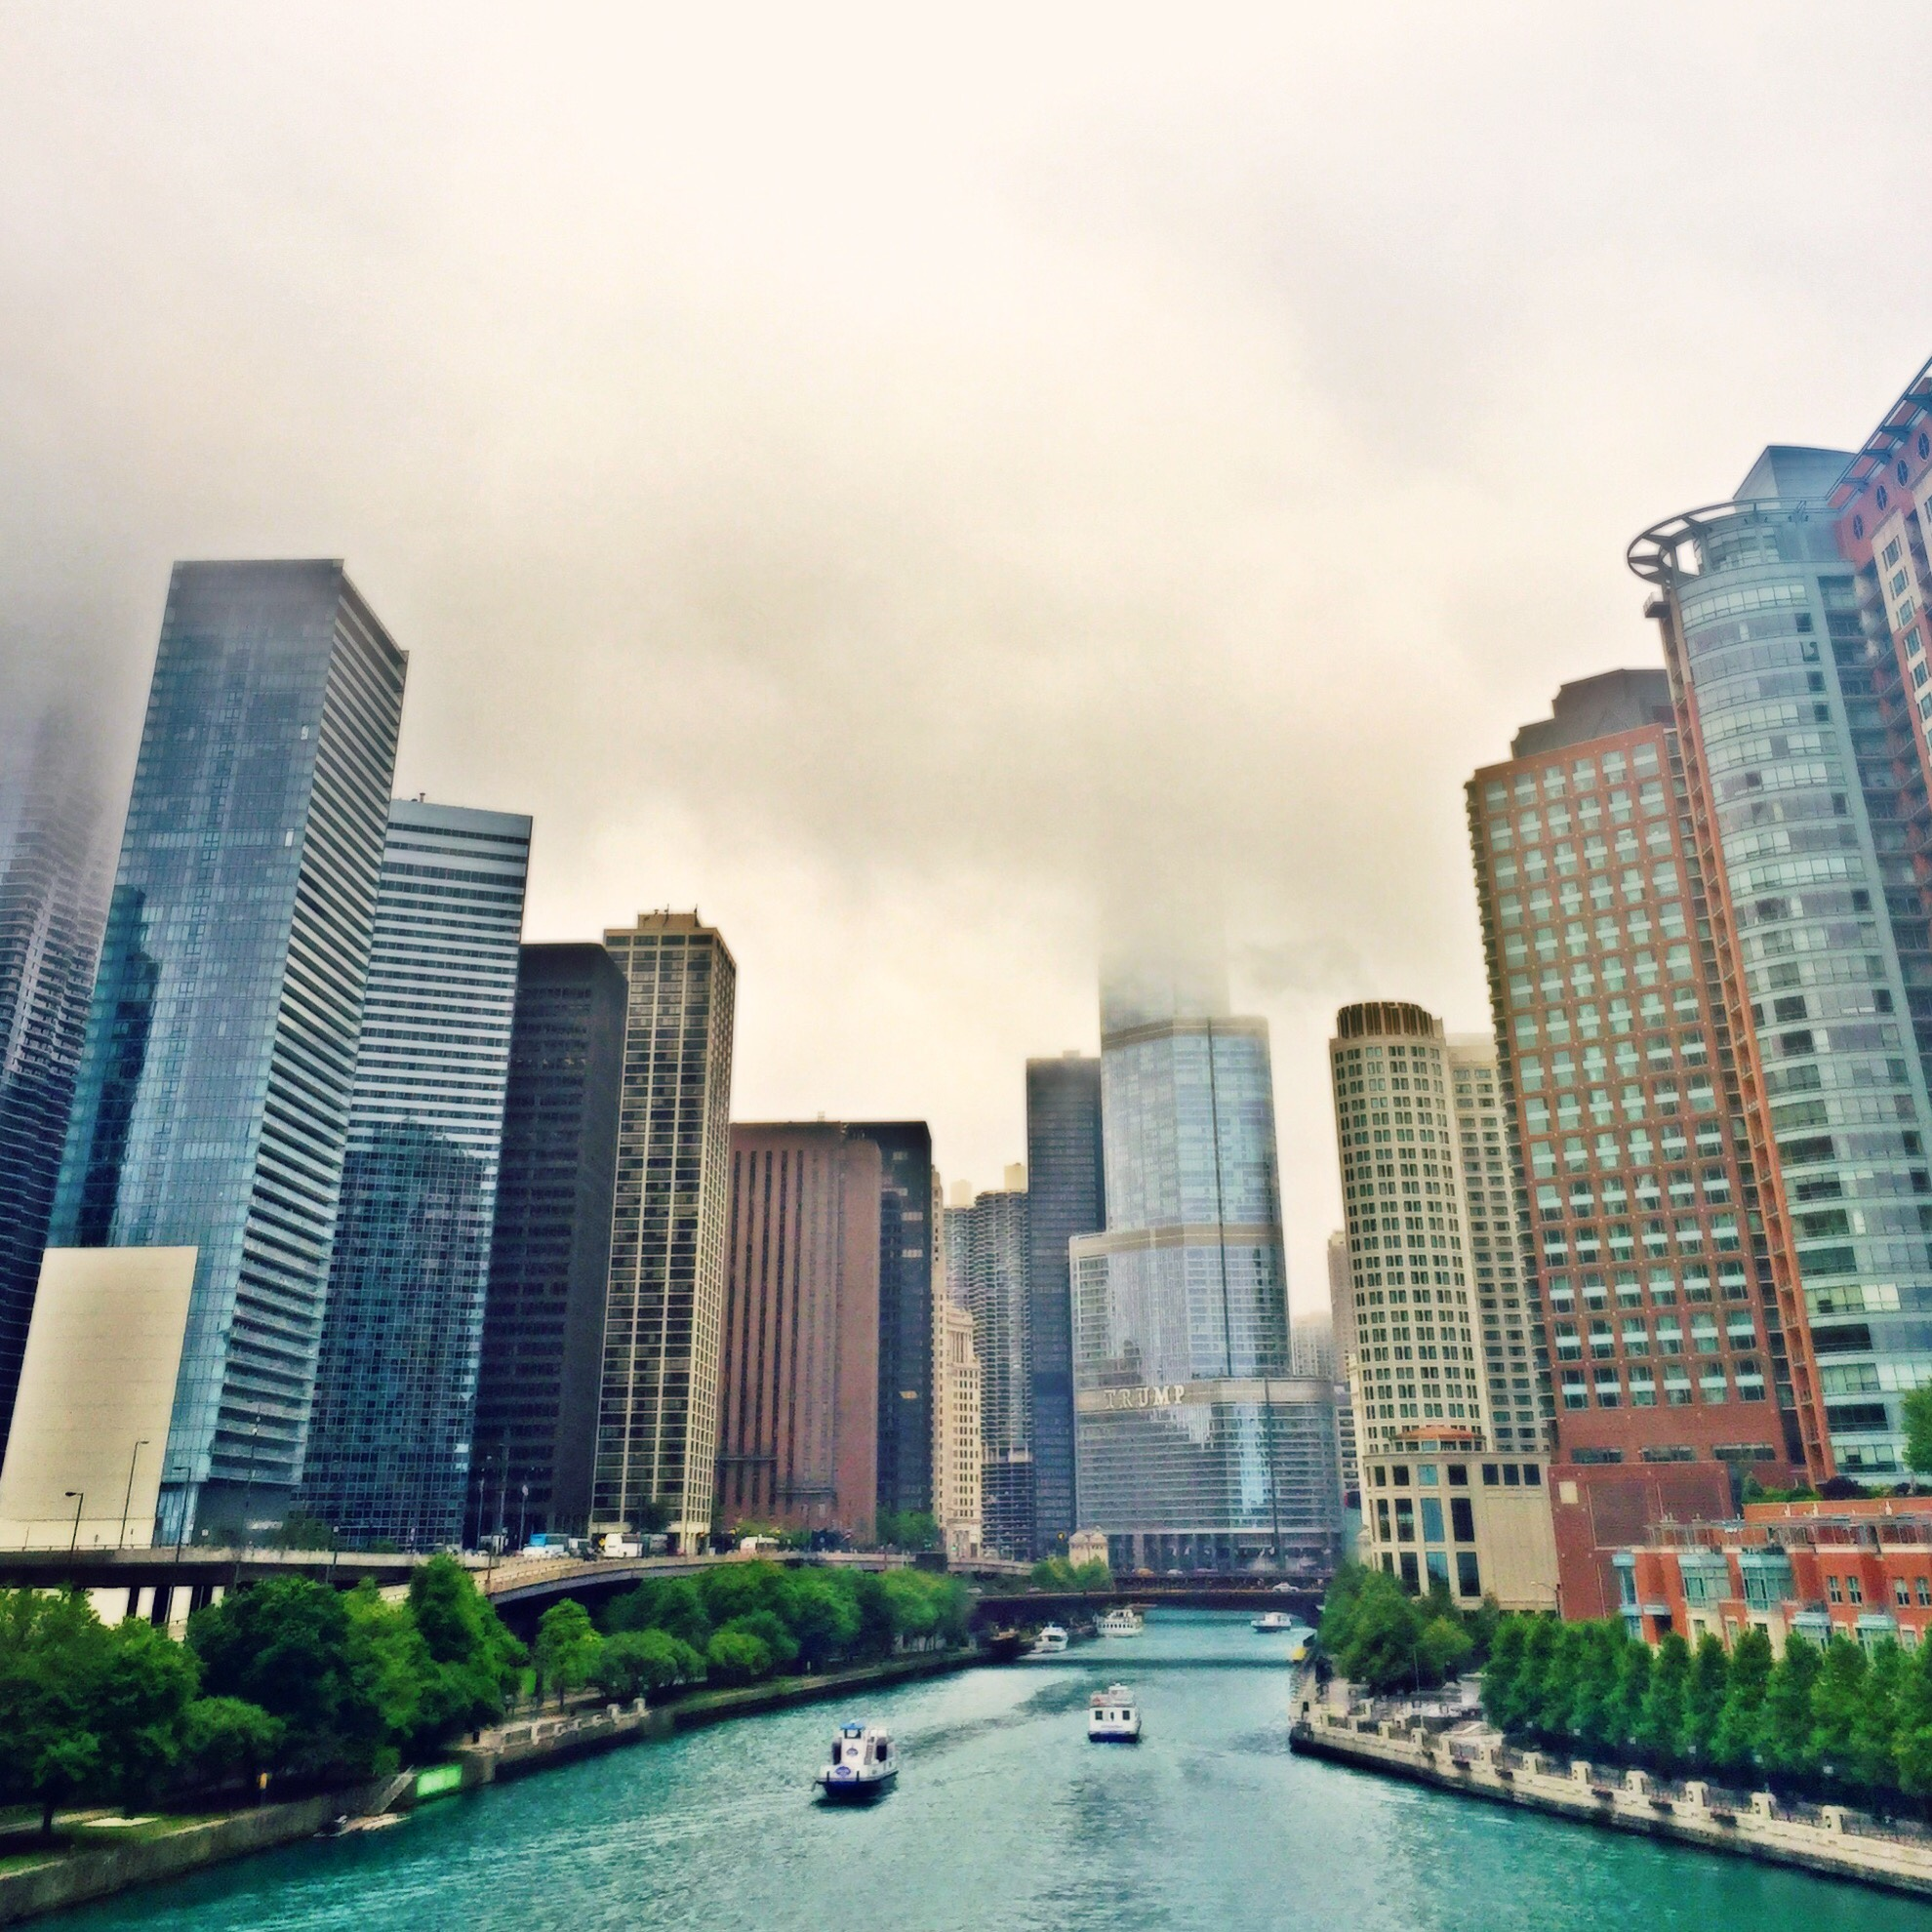 Chicago River on a dreary day